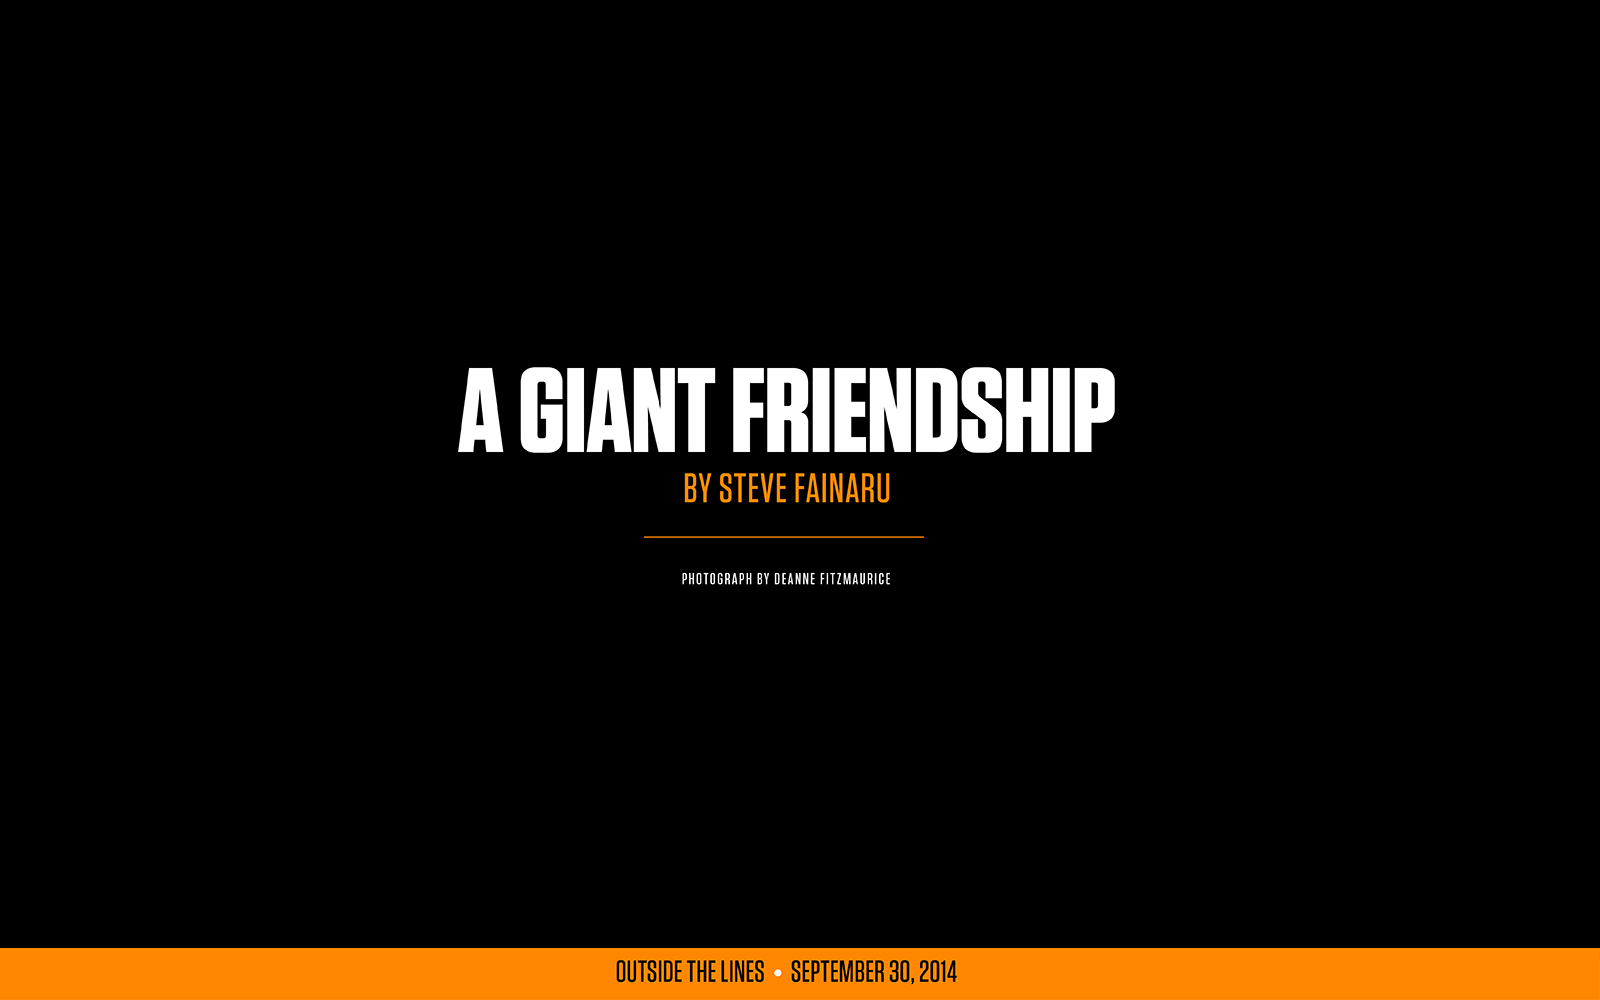 The Giant friendship between San Francisco Giants ...